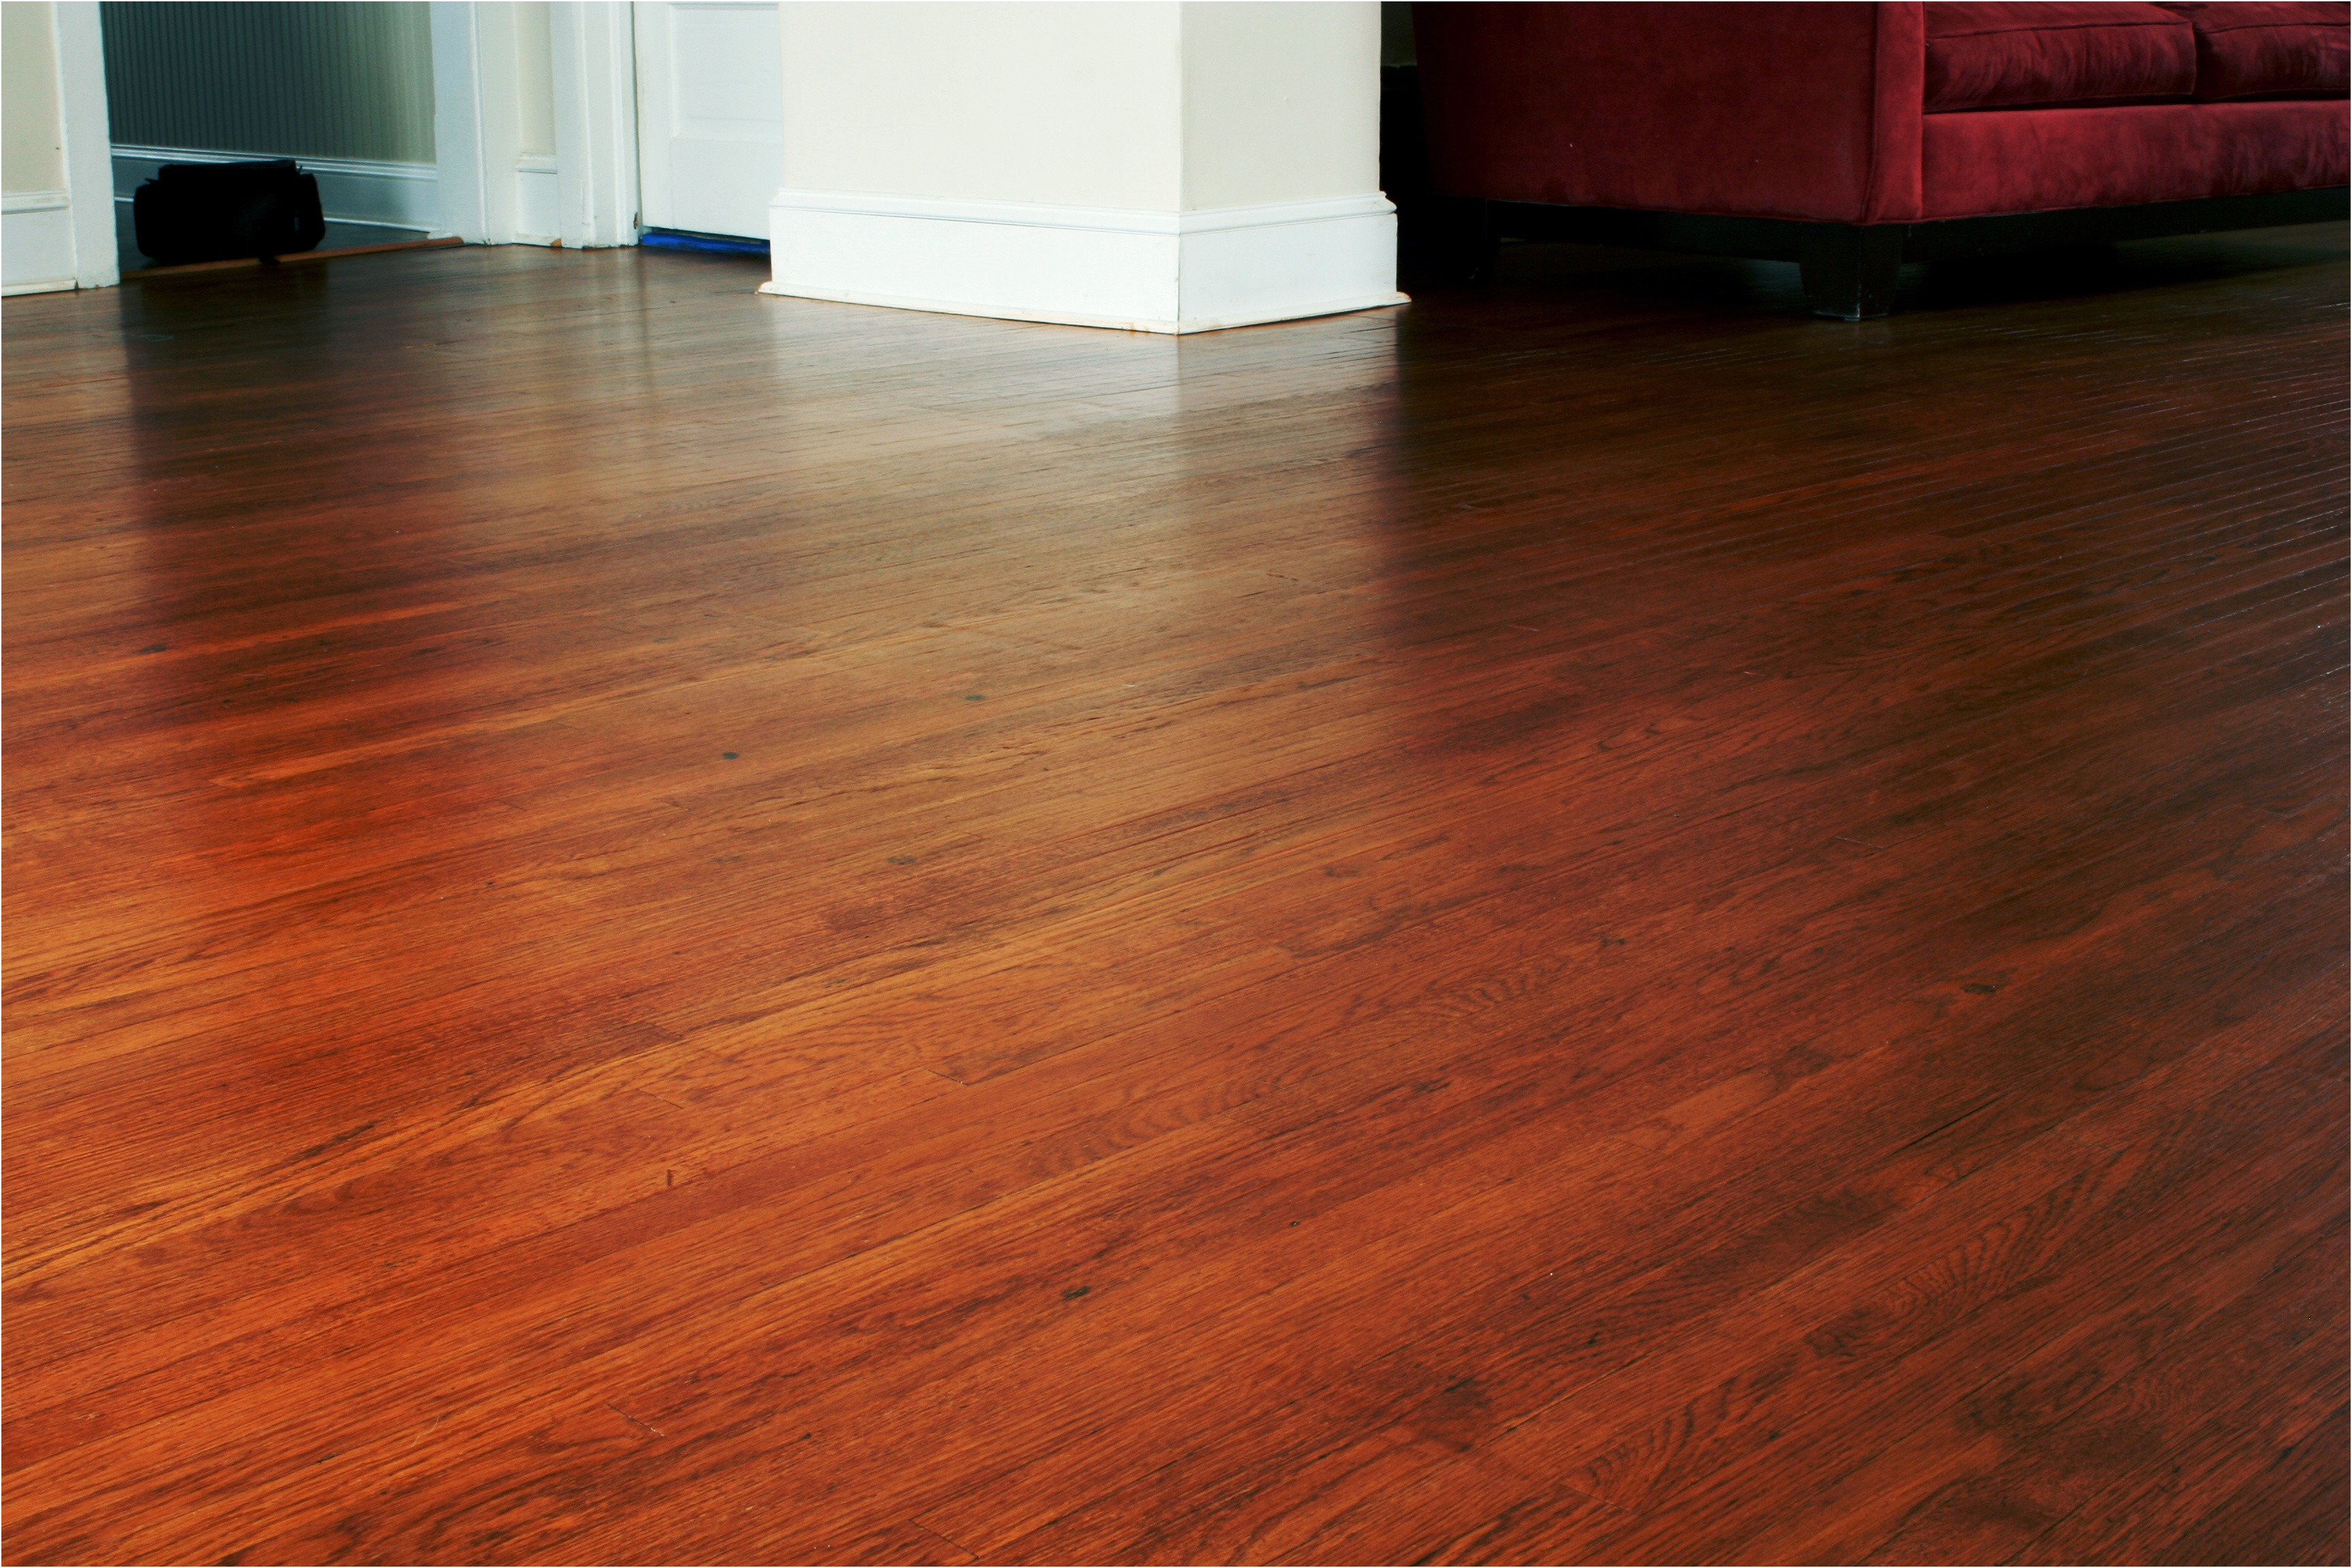 hardwood floor repair near me of can you stain laminate flooring lovely how to stain a hardwood floor with can you stain laminate flooring beautiful how to diagnose and repair sloping floors homeadvisor of can